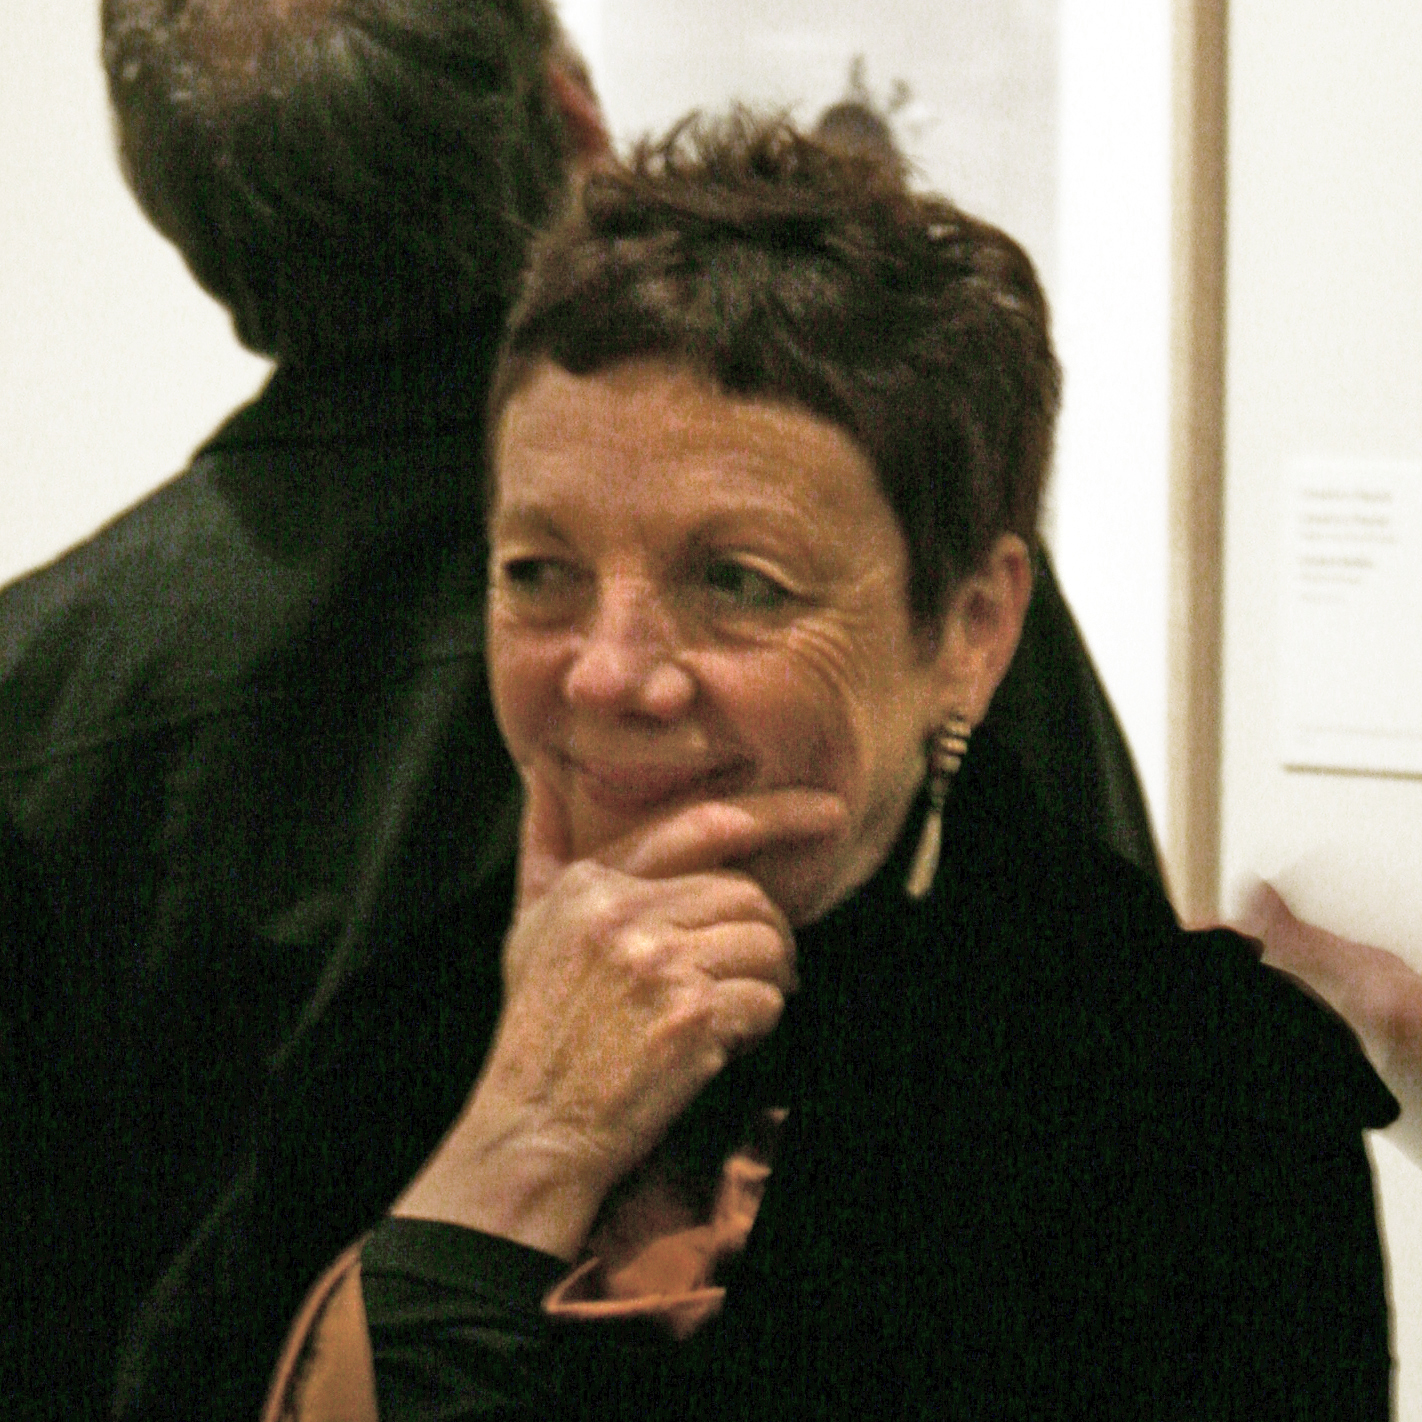 Image of Graciela Iturbide from Wikidata